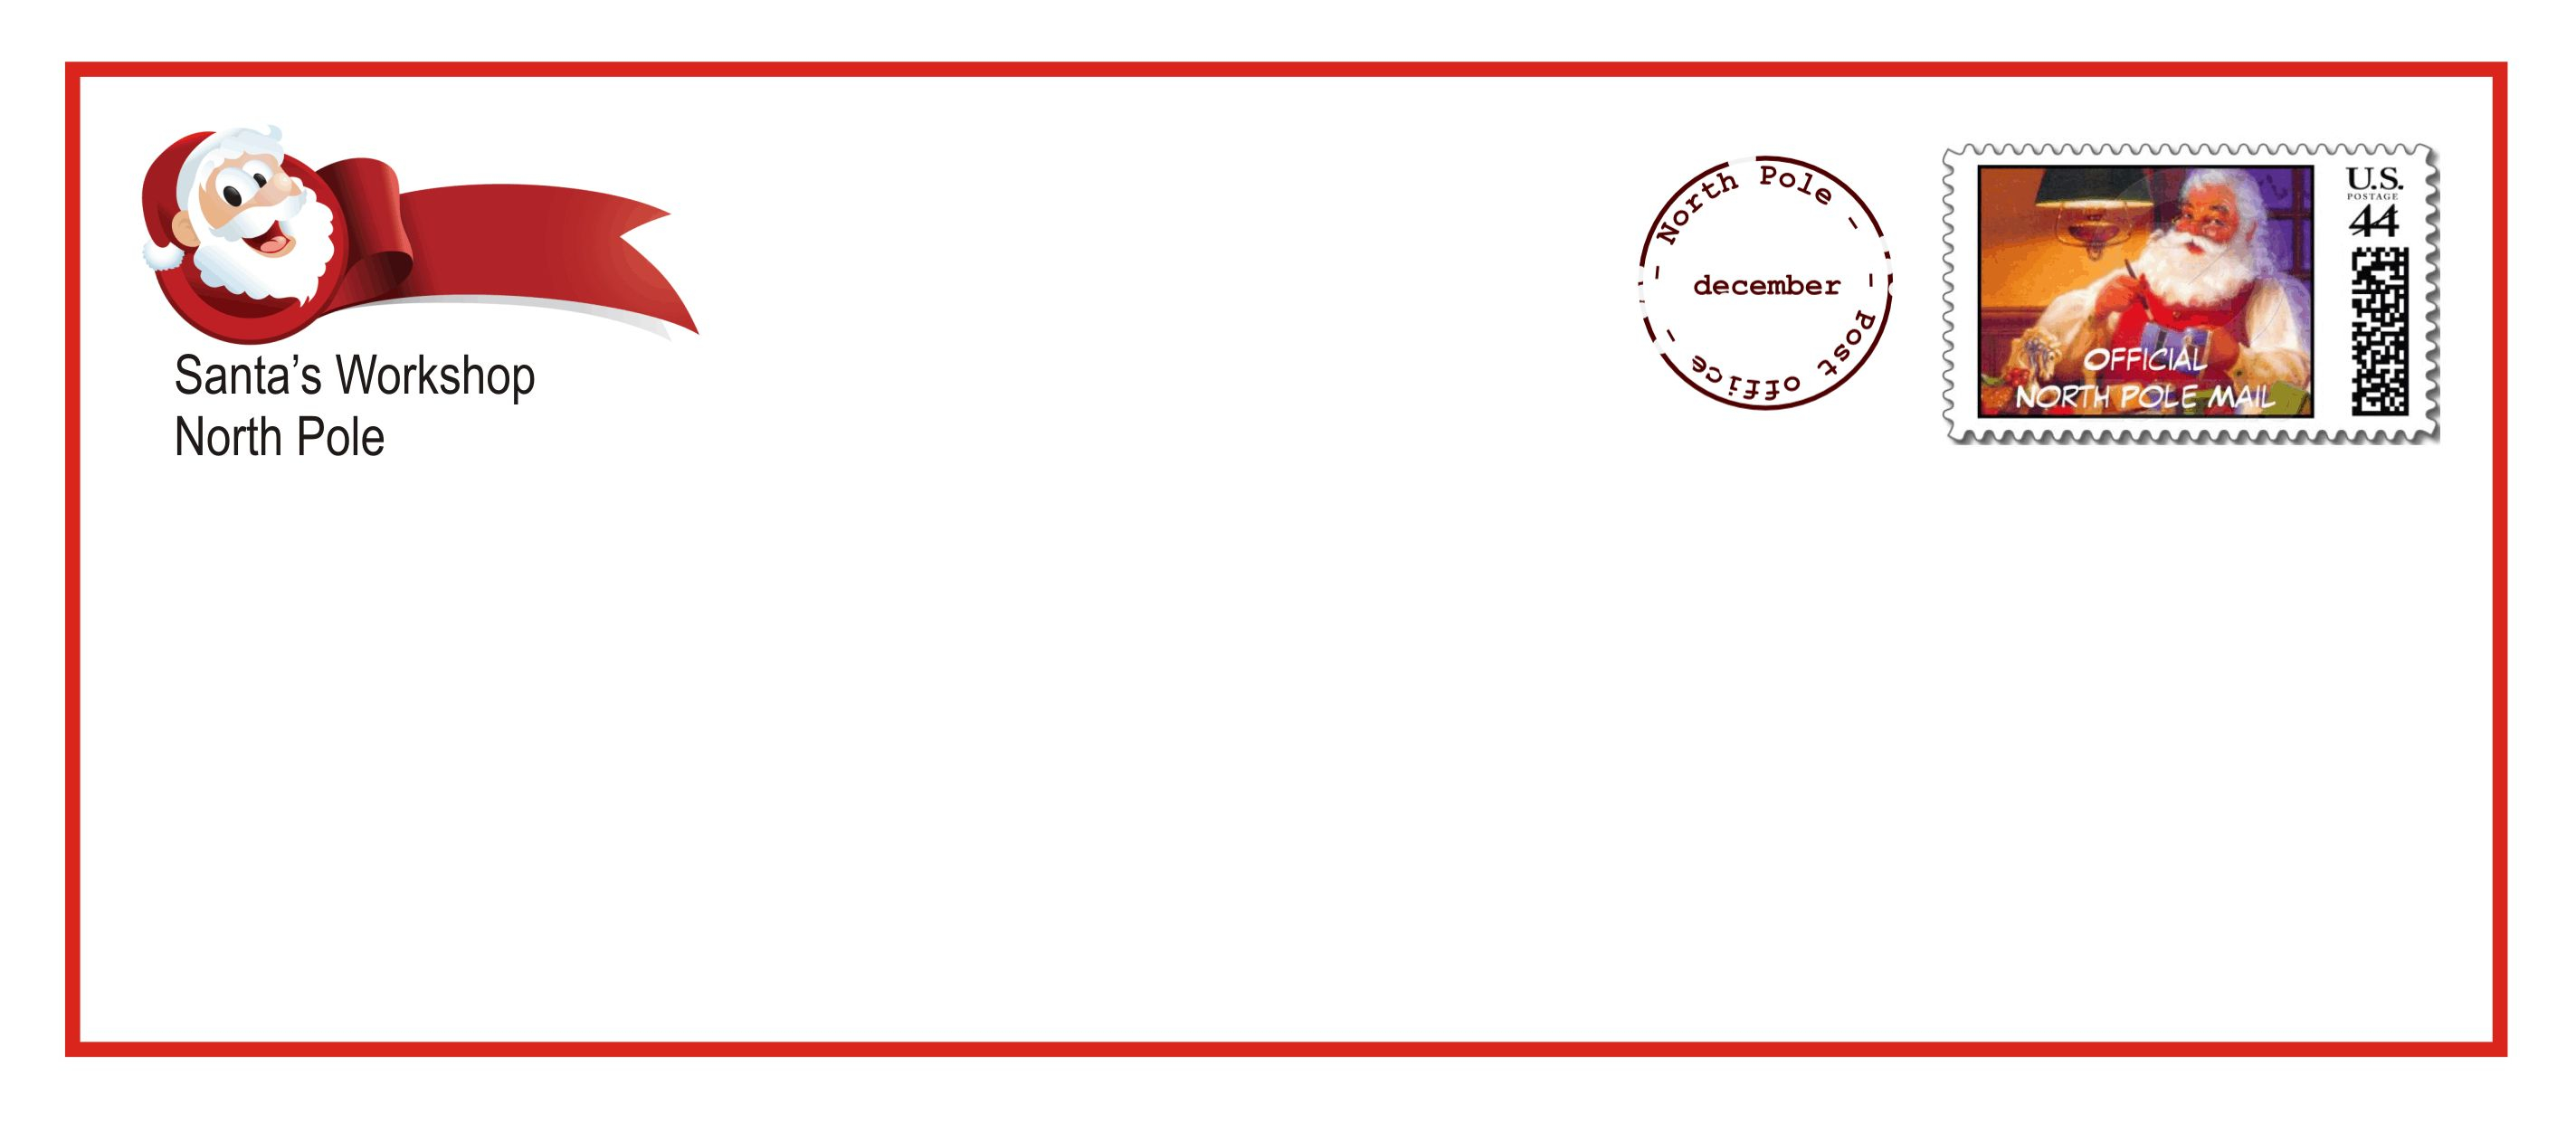 photo regarding Santa Letter Template Free Printable identified as Santa Claus Letter Template Samples Letter Templates